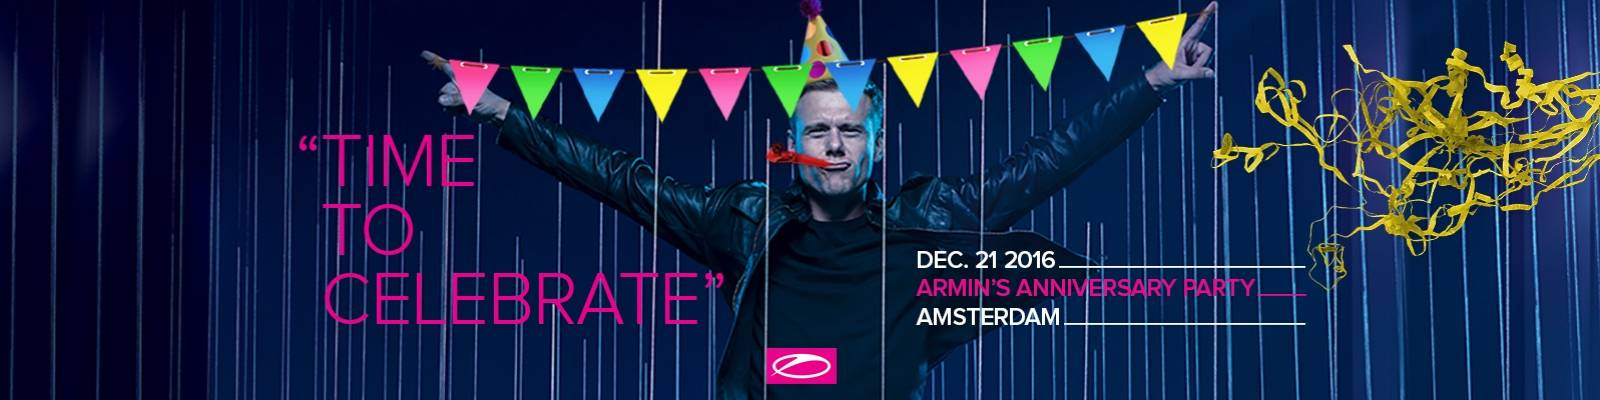 TIME TO CELEBRATE: Armin's anniversary party!